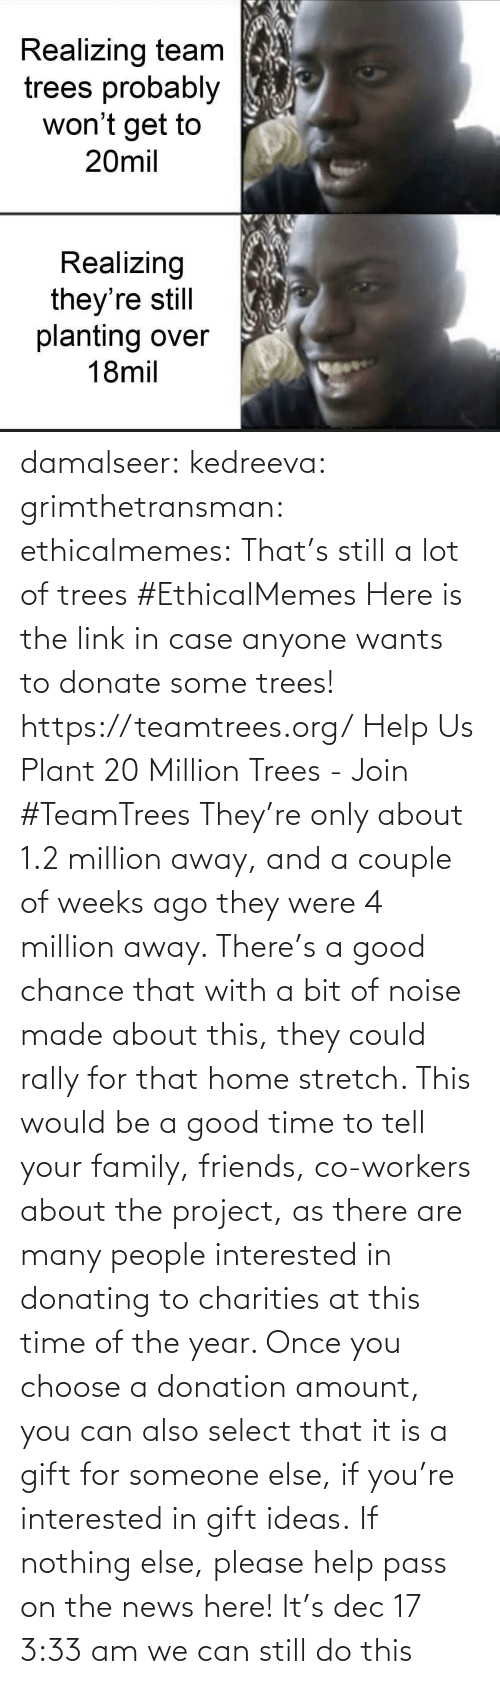 Co Workers: Realizing team  trees probably  won't get to  20mil  Realizing  they're still  planting over  18mil damalseer:  kedreeva: grimthetransman:  ethicalmemes:  That's still a lot of trees #EthicalMemes   Here is the link in case anyone wants to donate some trees!  https://teamtrees.org/ Help Us Plant 20 Million Trees - Join #TeamTrees  They're only about 1.2 million away, and a couple of weeks ago they were 4 million away. There's a good chance that with a bit of noise made about this, they could rally for that home stretch. This would be a good time to tell your family, friends, co-workers about the project, as there are many people interested in donating to charities at this time of the year. Once you choose a donation amount, you can also select that it is a gift for someone else, if you're interested in gift ideas. If nothing else, please help pass on the news here!    It's dec 17 3:33 am we can still do this